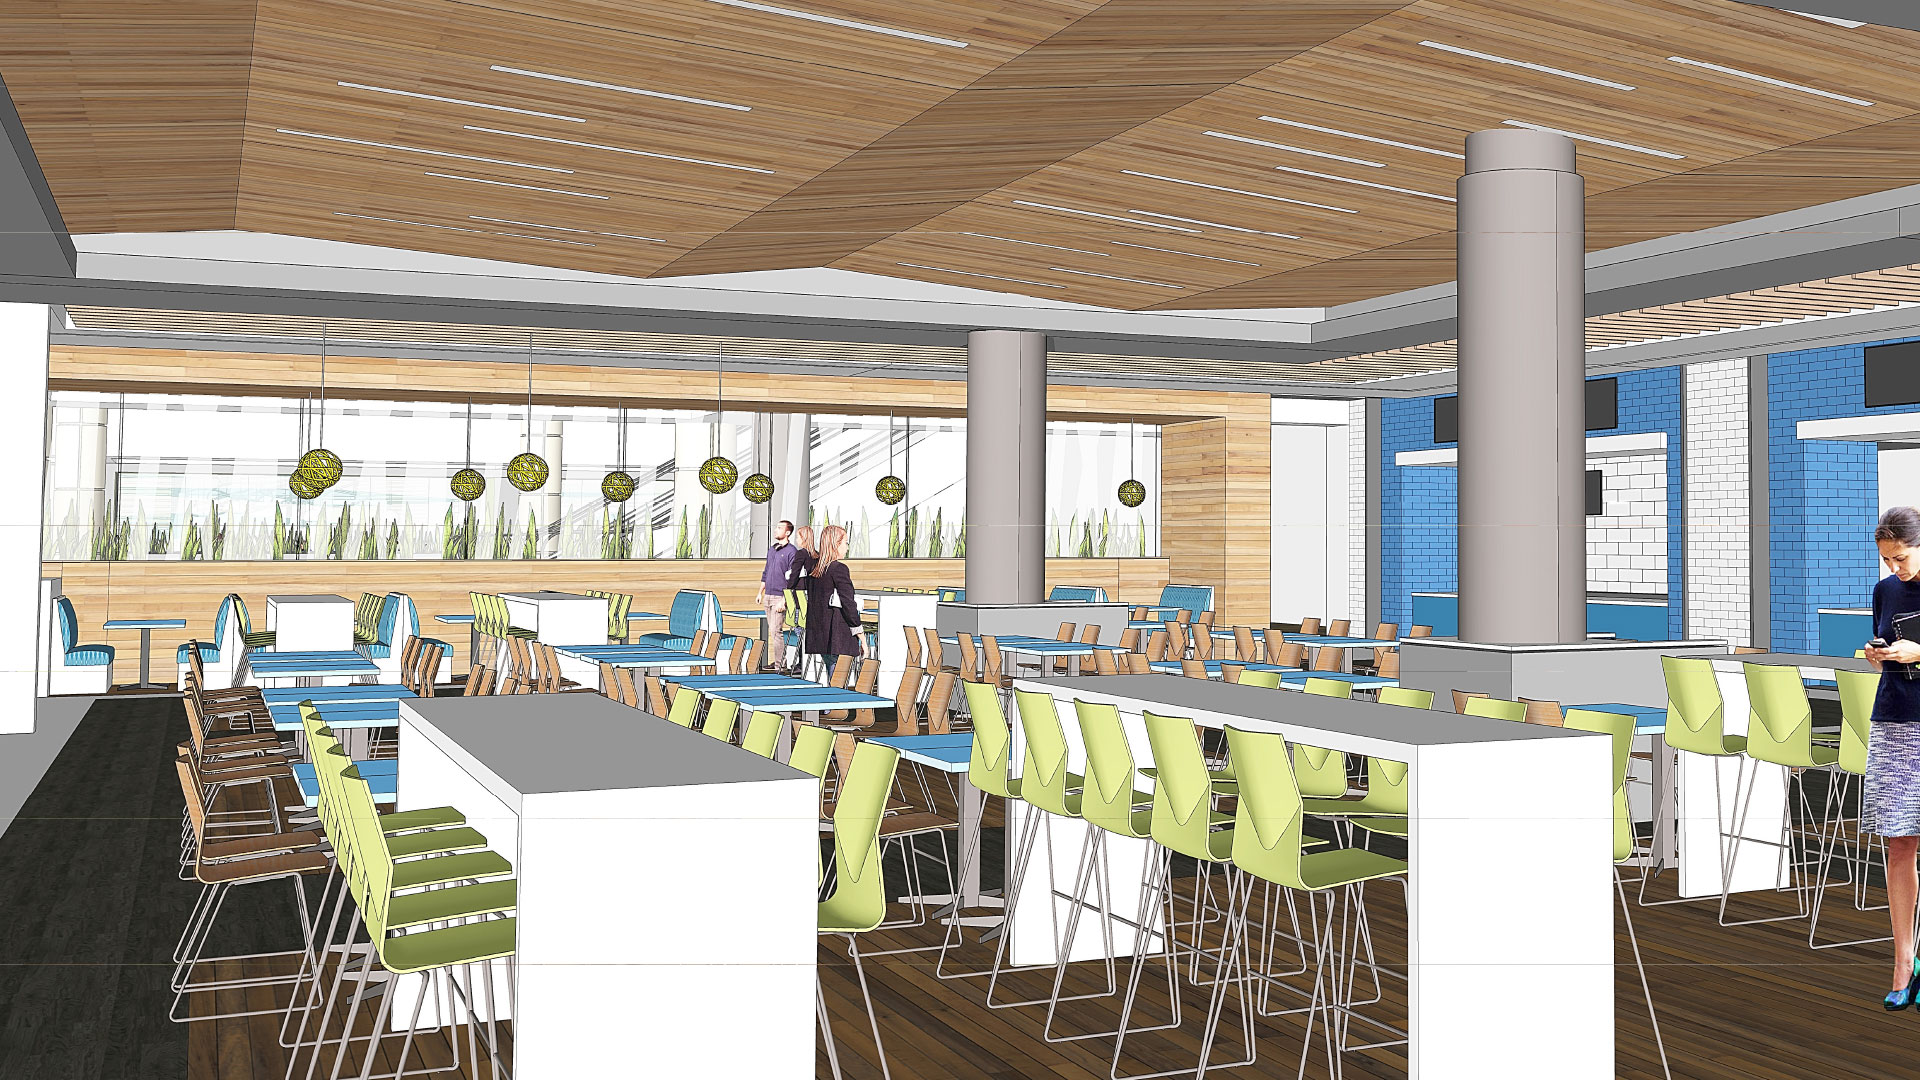 Food court renovations underway at the Orange County Convention Center's West concourse